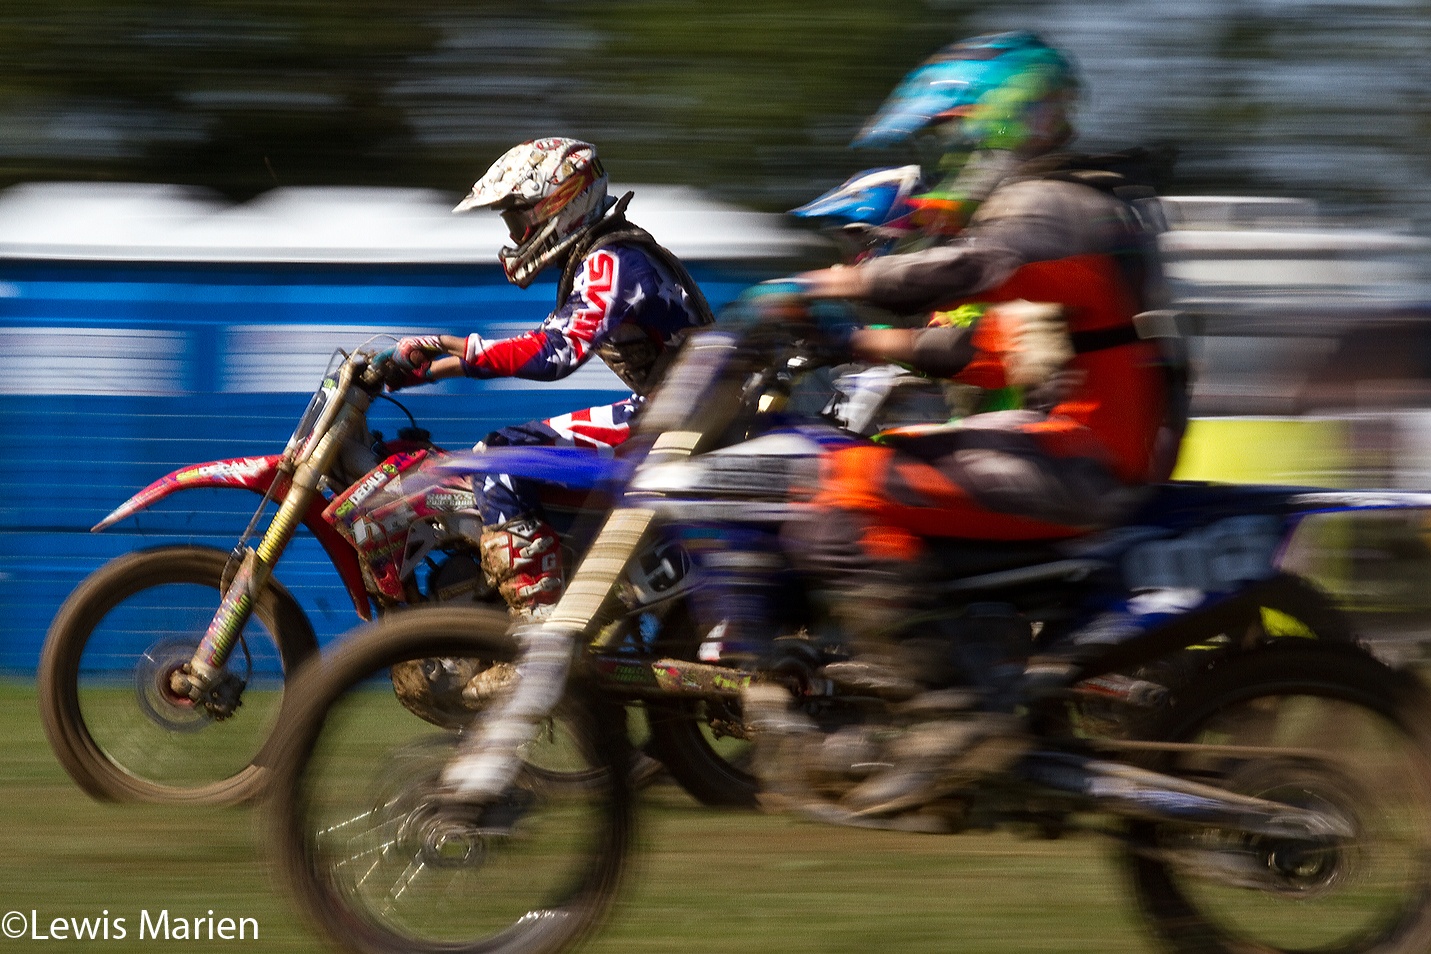 Lukas Villarreal, left, of Henderson, Ill., overtakes two other racers during the AMA District 17 Illinois State Motocross Championship on Sept. 20 at the Galesburg Motorcycle Club near Rio, Ill.